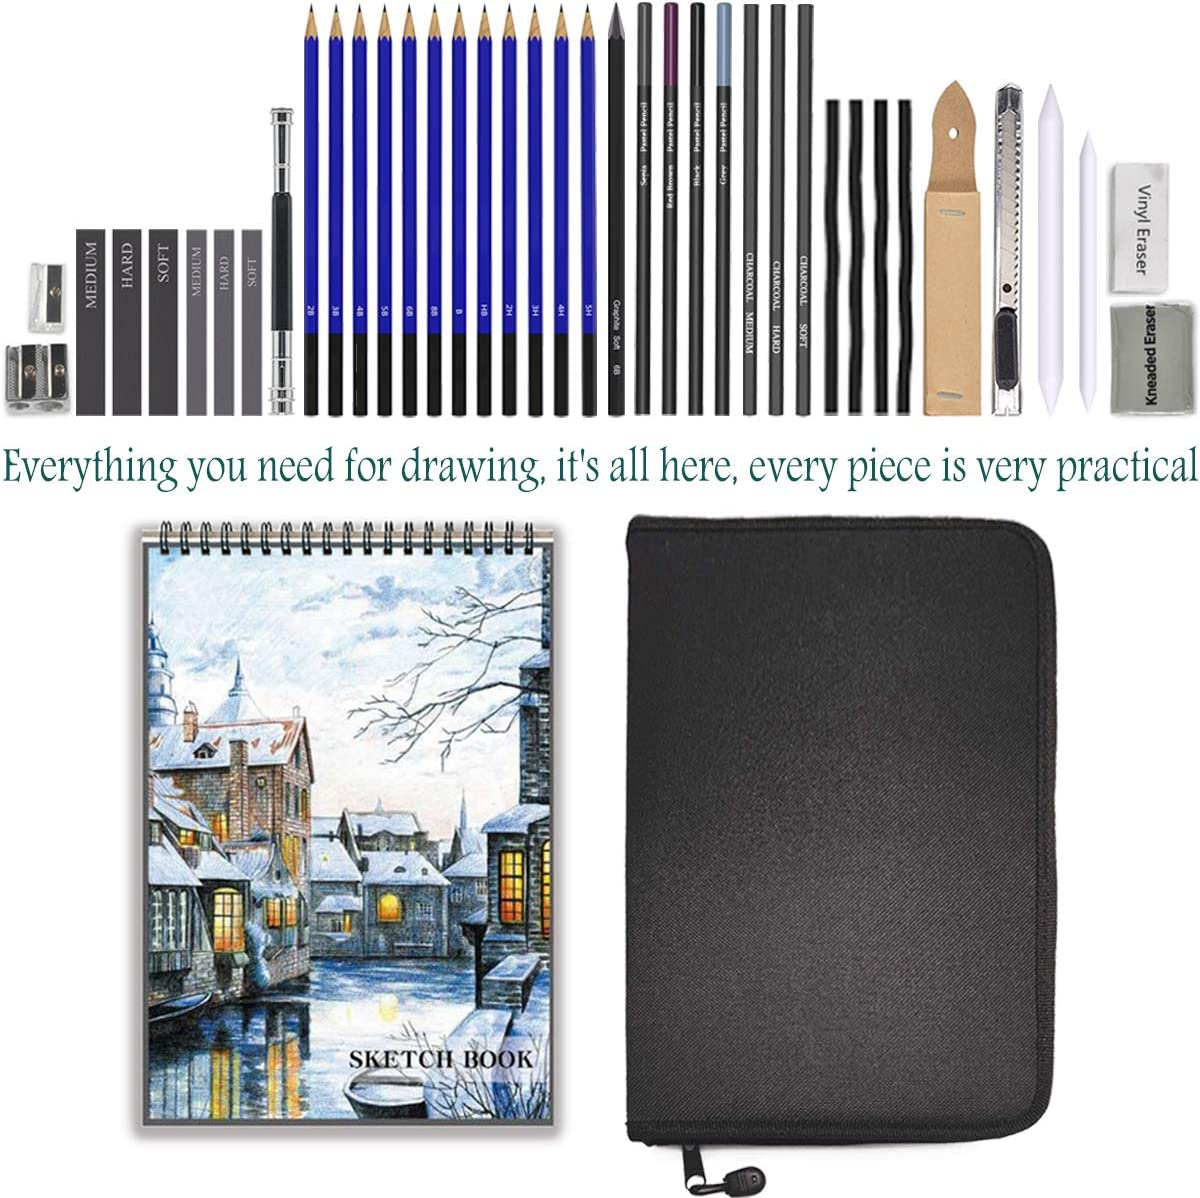 Sketch Pencils Set with Sketchbook, 41-Piece Professional Drawing Set and a 50-Sheet Pad for Kids, Teens and Adults, Complete Artist Kit Includes Pencils, Erasers, Pastels, A Handy Case etc.